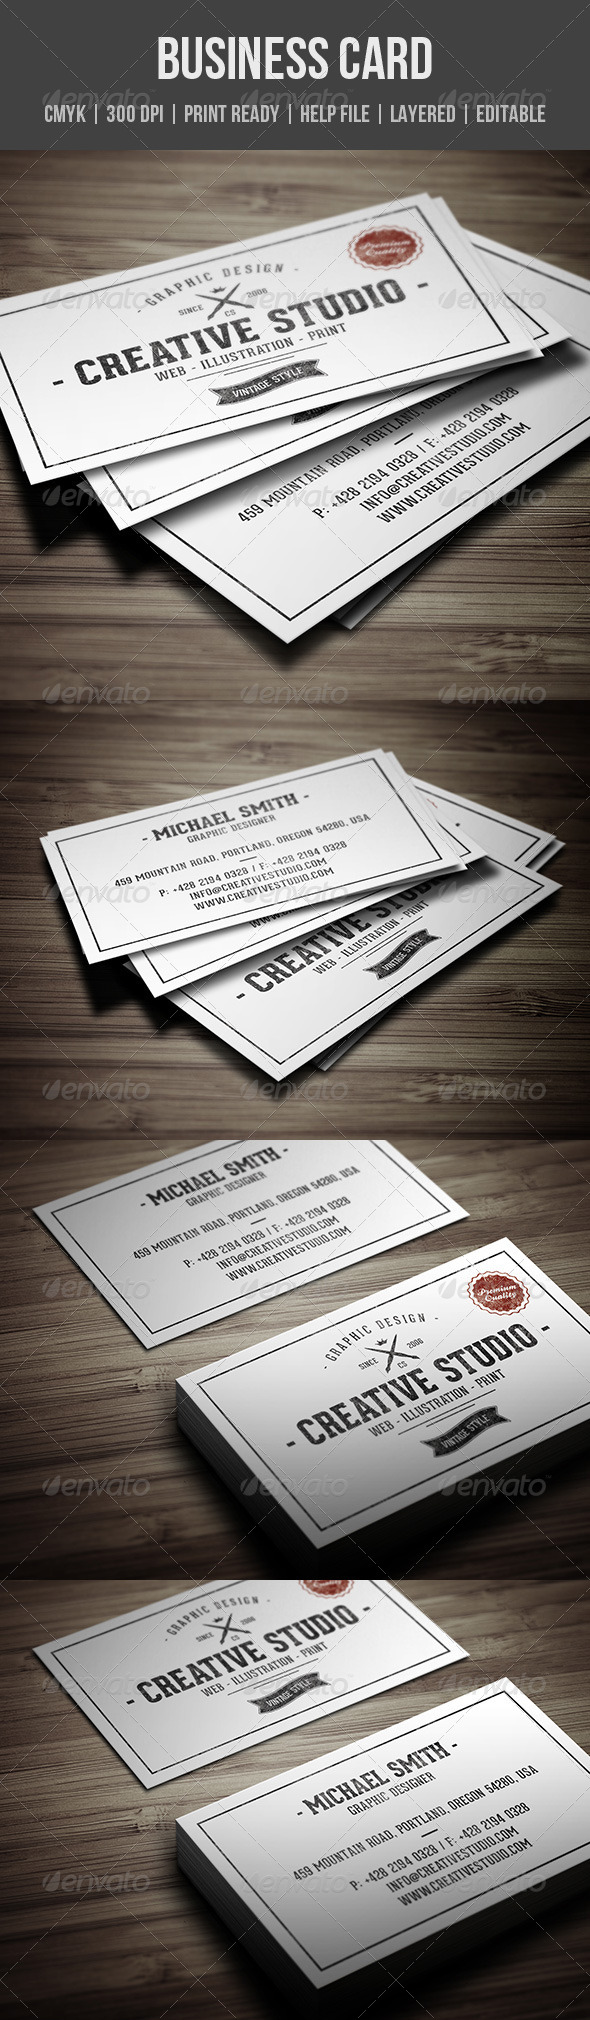 GraphicRiver Vintage Business Card 8125862